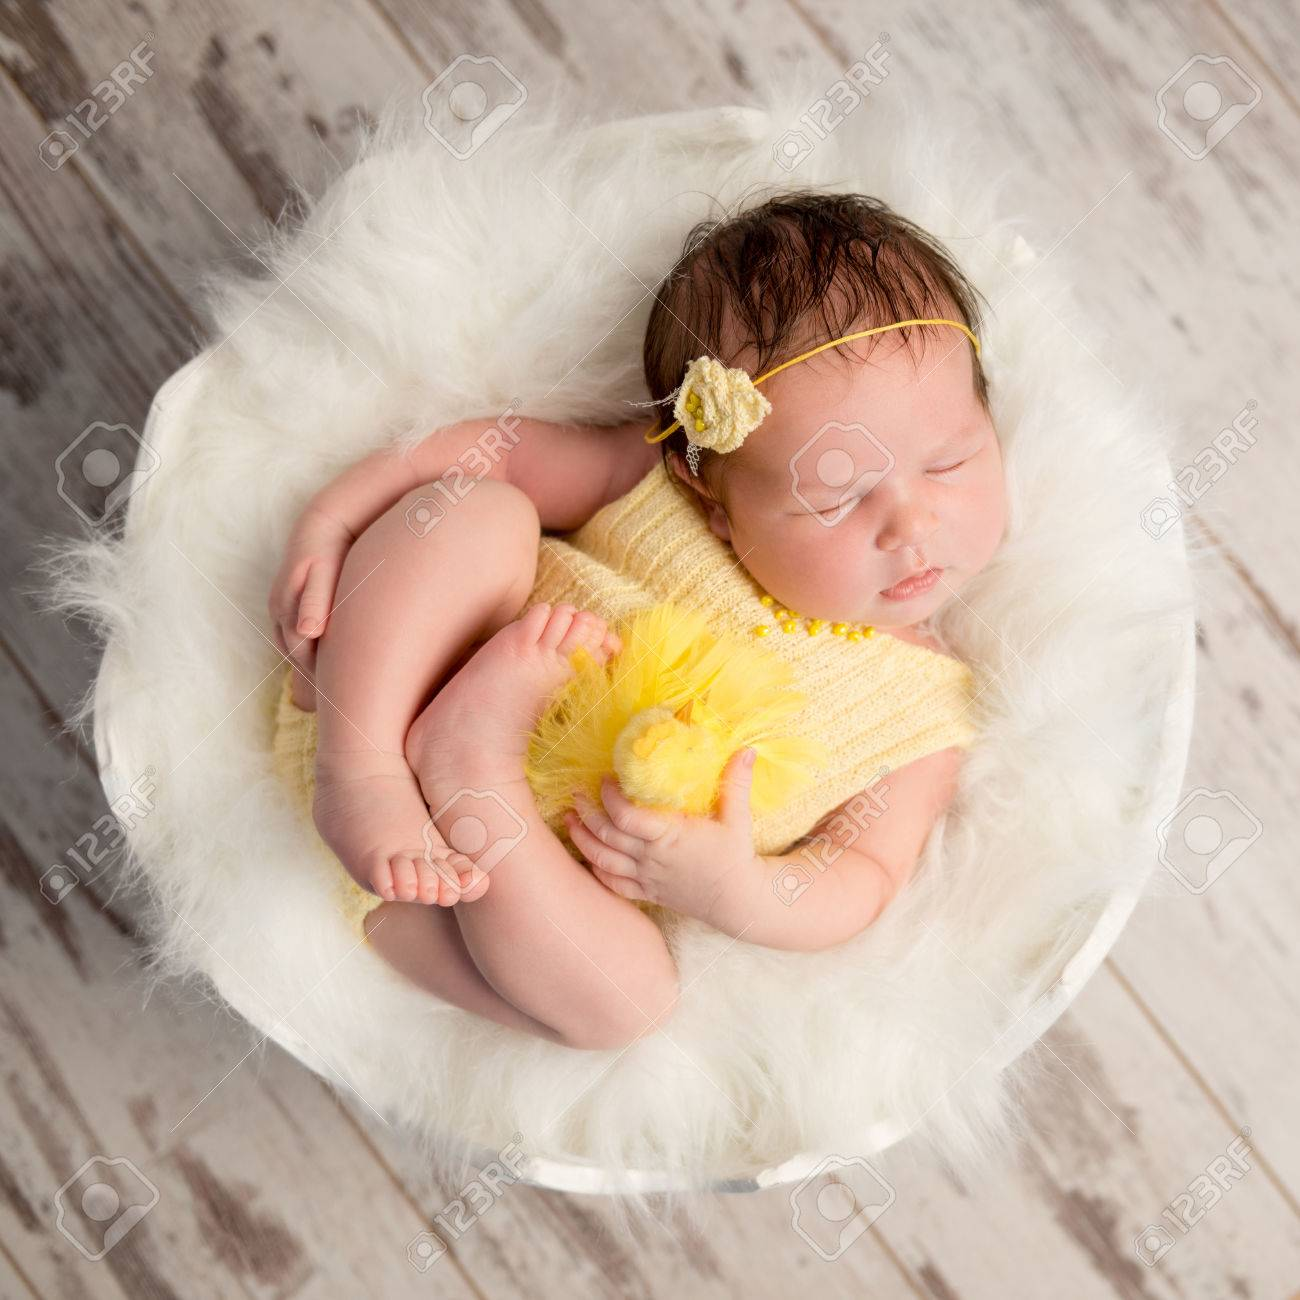 Funny Sleeping Baby In Yellow Romper With Chicken Toy On Round Stock Photo Picture And Royalty Free Image Image 61324926